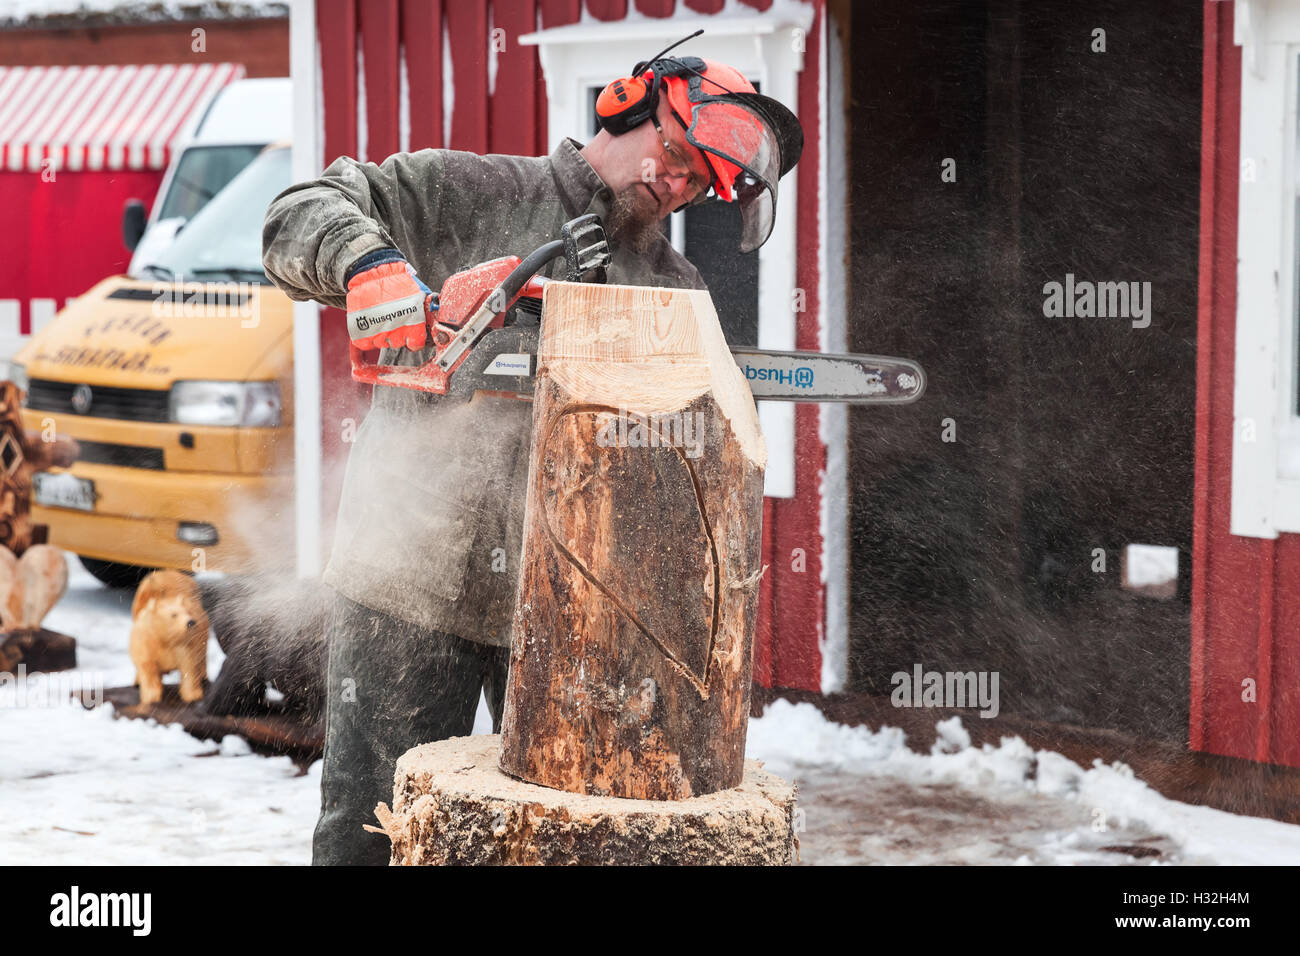 Hamina, Finland - December 13, 2014: Master sculptor with a chainsaw produces wooden bird sculpture Stock Photo